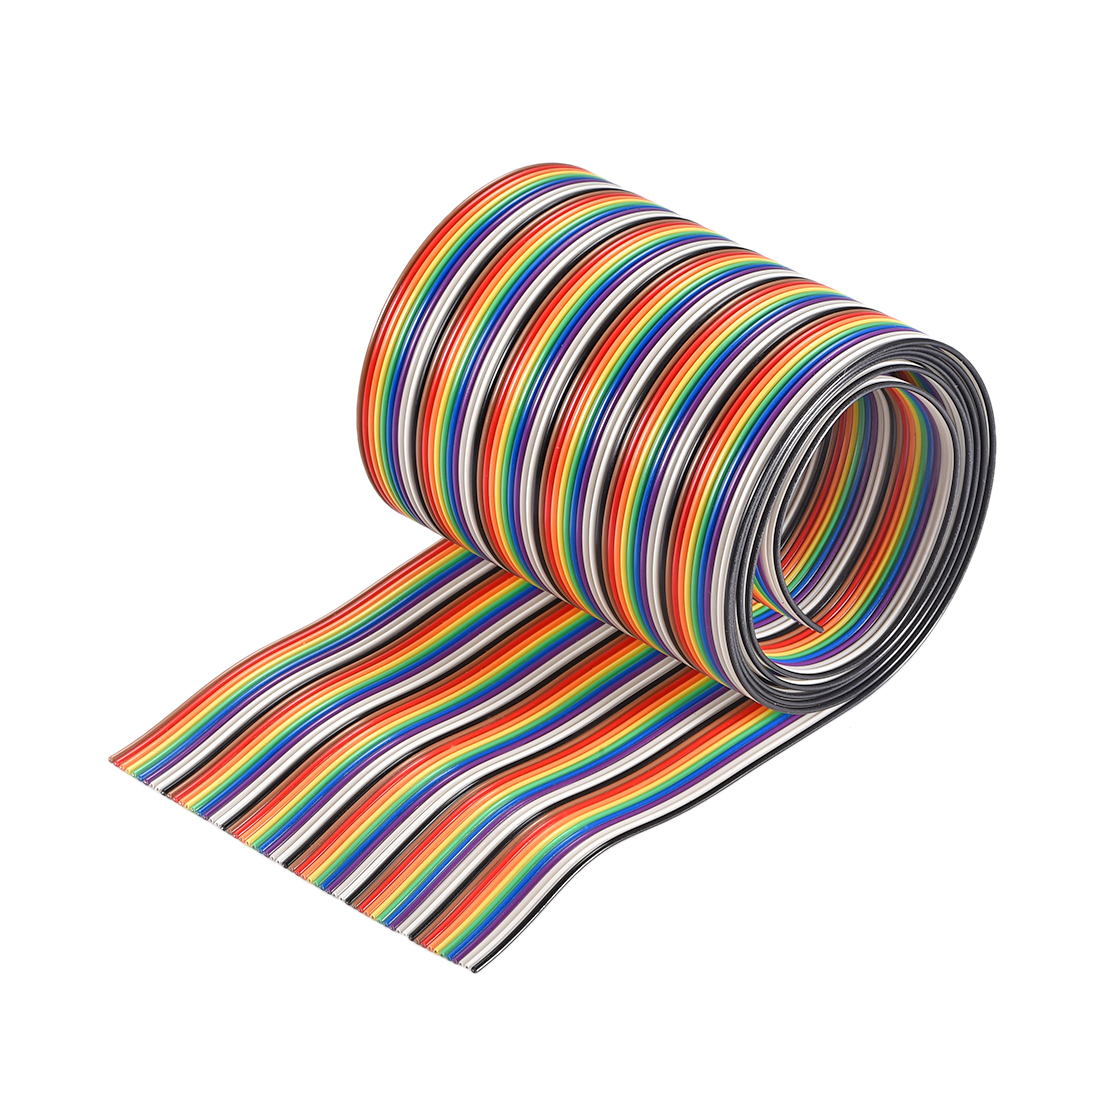 IDC Rainbow Wire Flat Ribbon Cable 60P 1.27mm Pitch 1meter/3.3ft Length